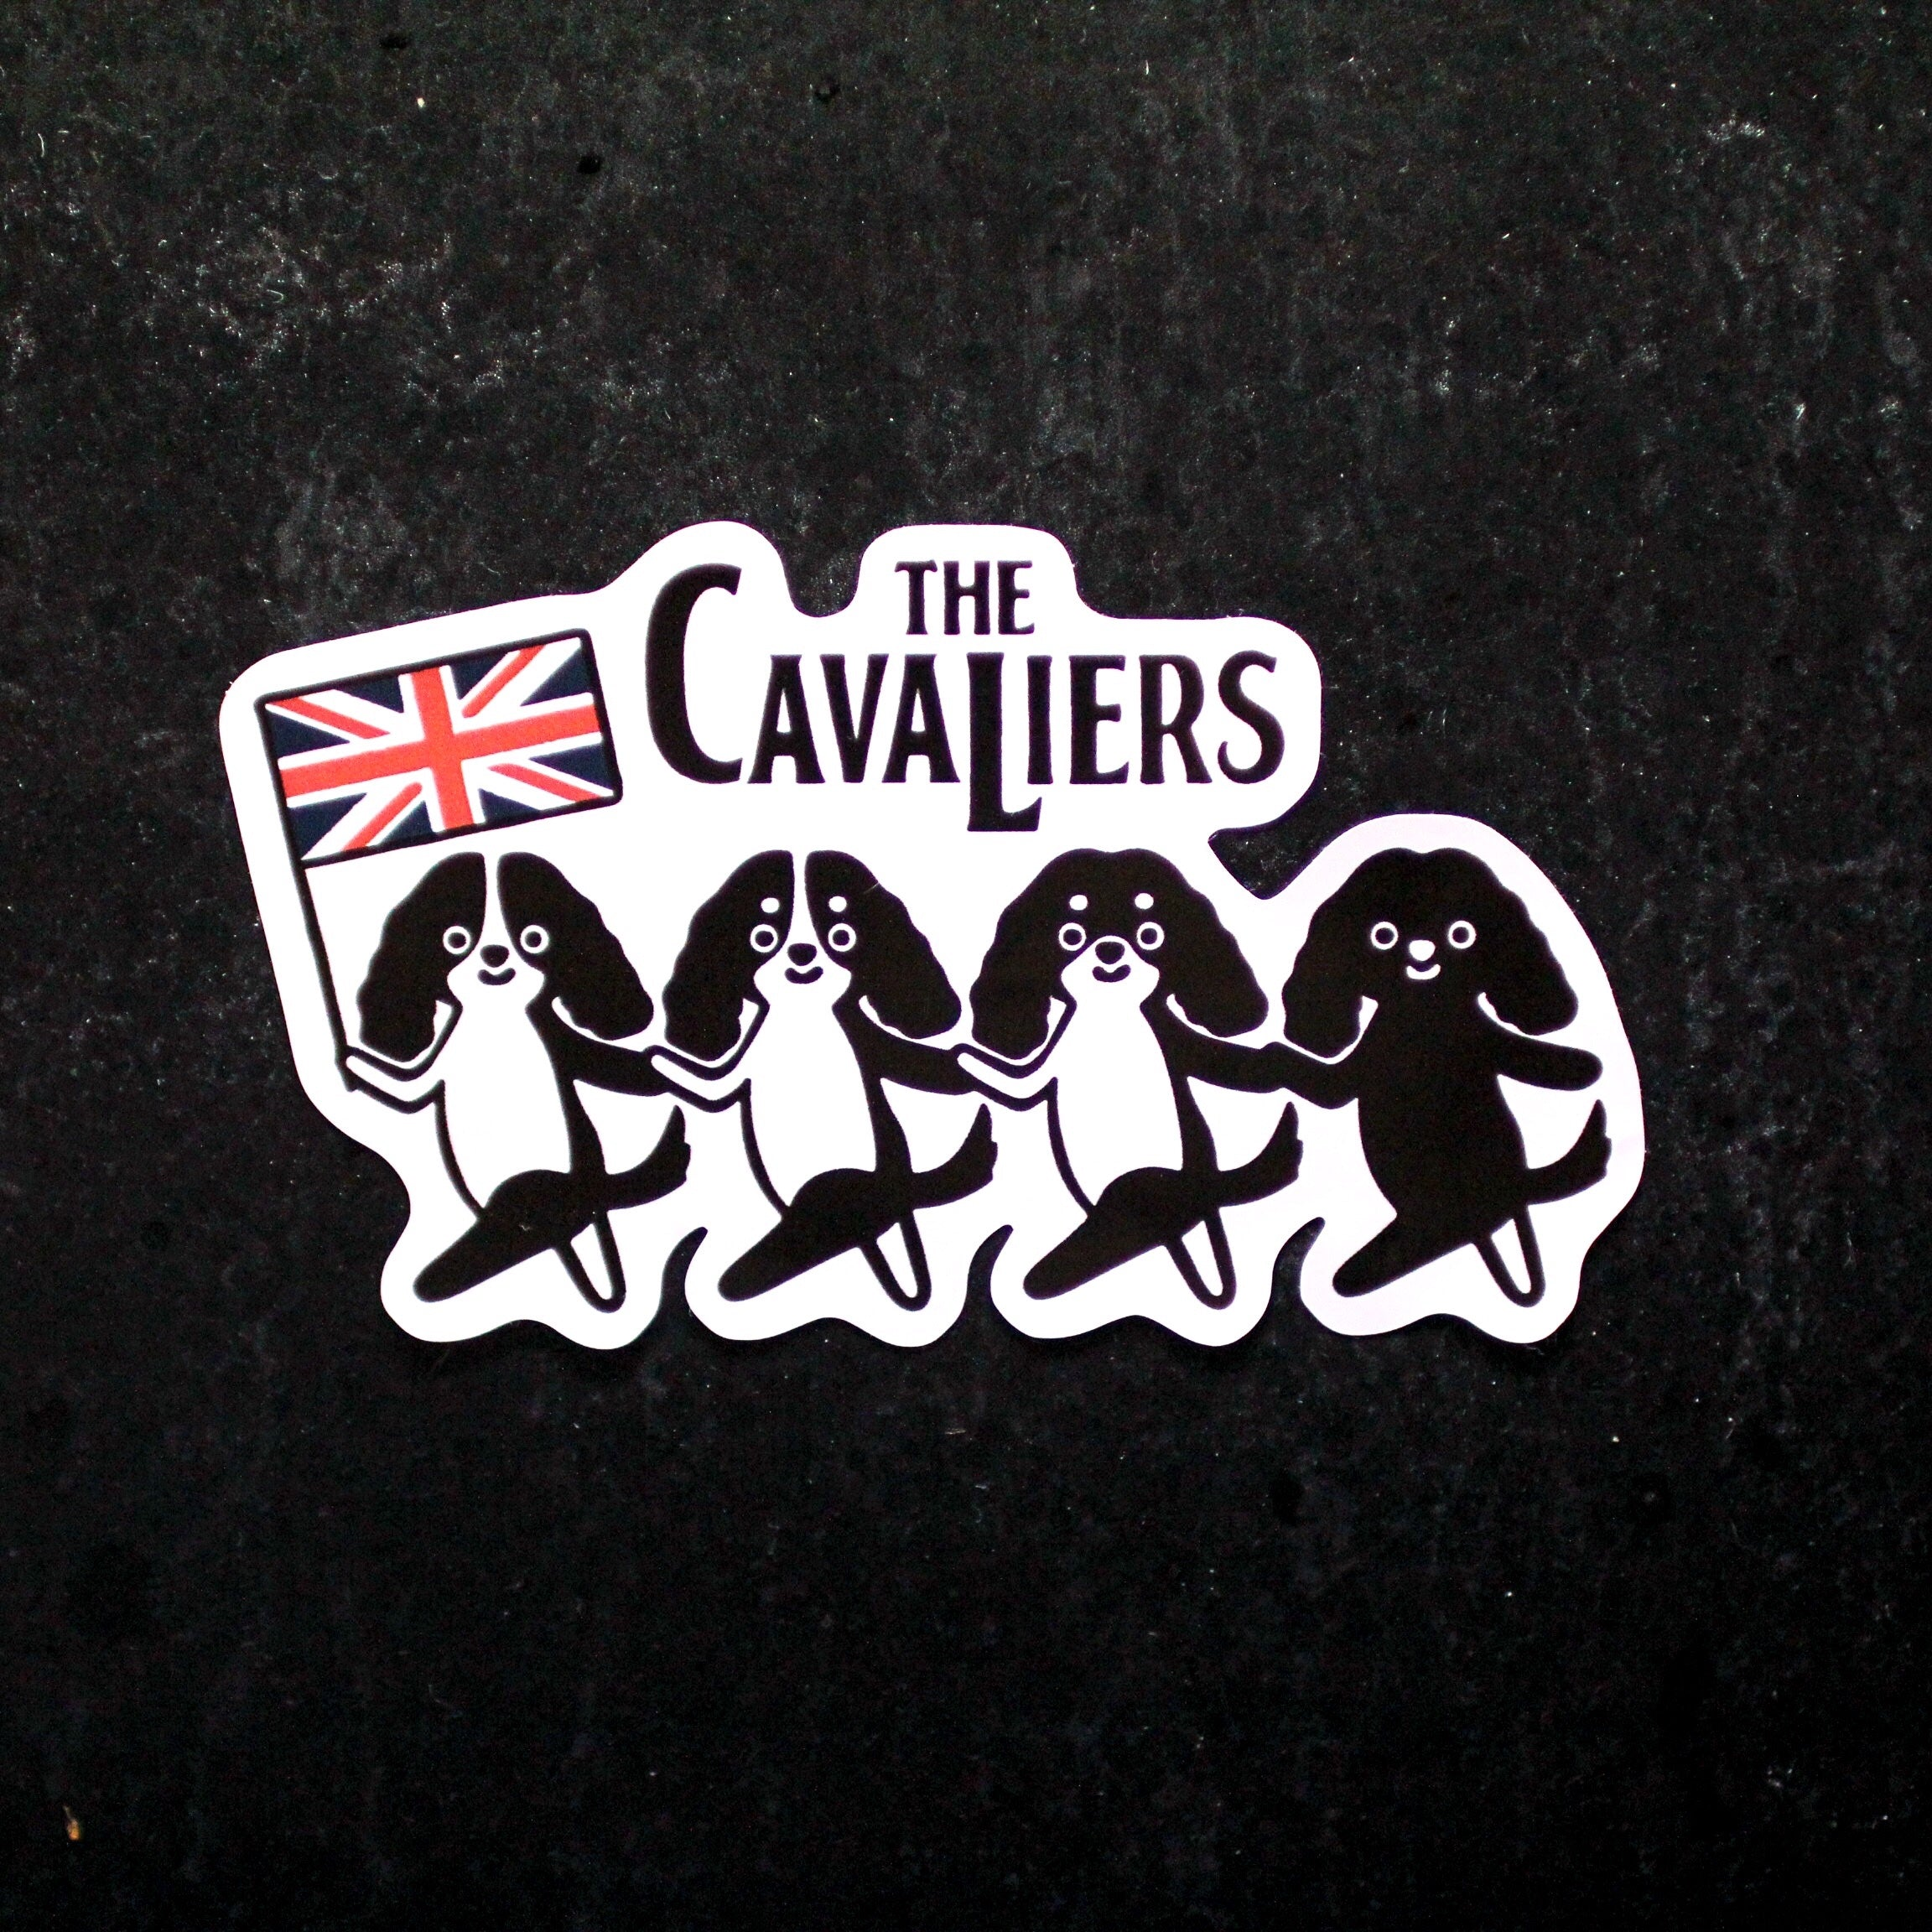 THE CAVALIERSステッカー